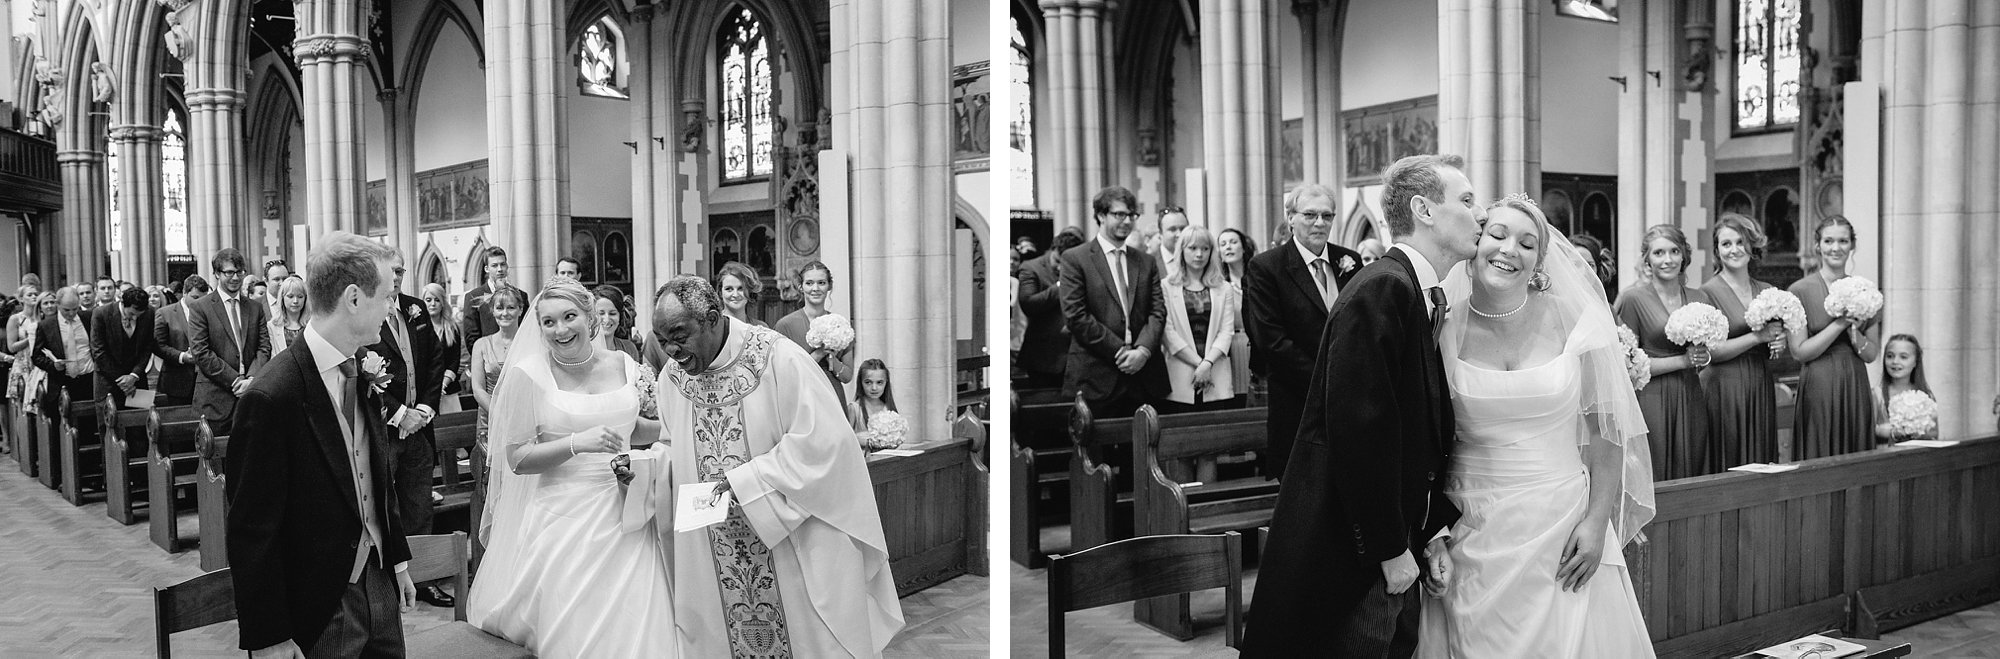 london-wedding-photographer_0027